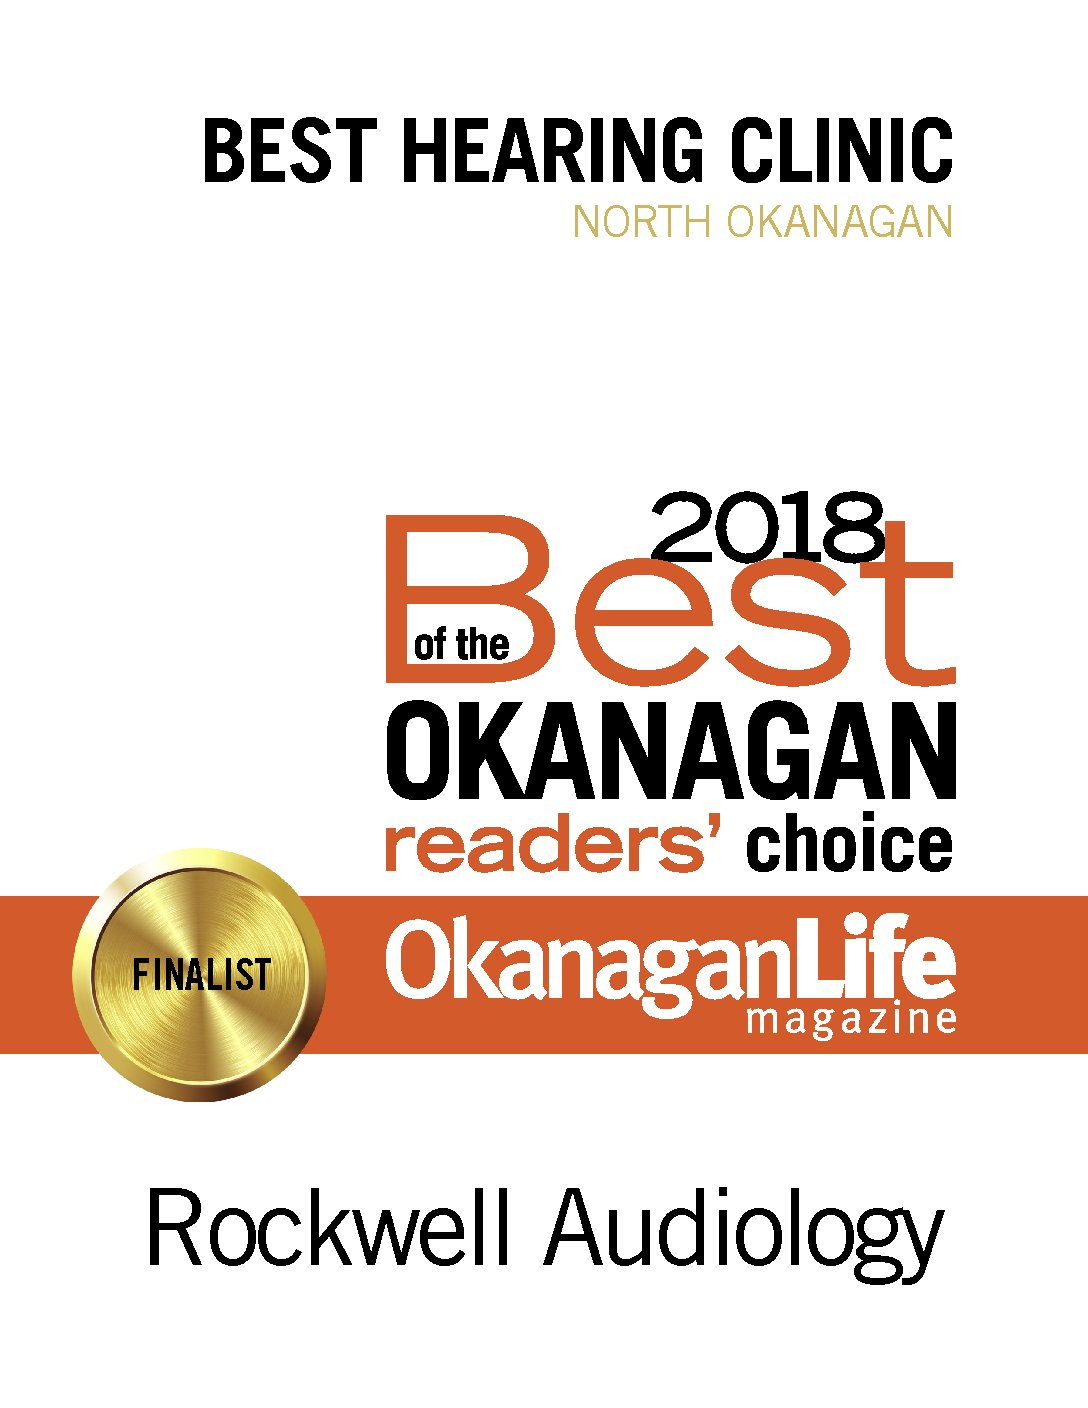 Rockwell Audiology